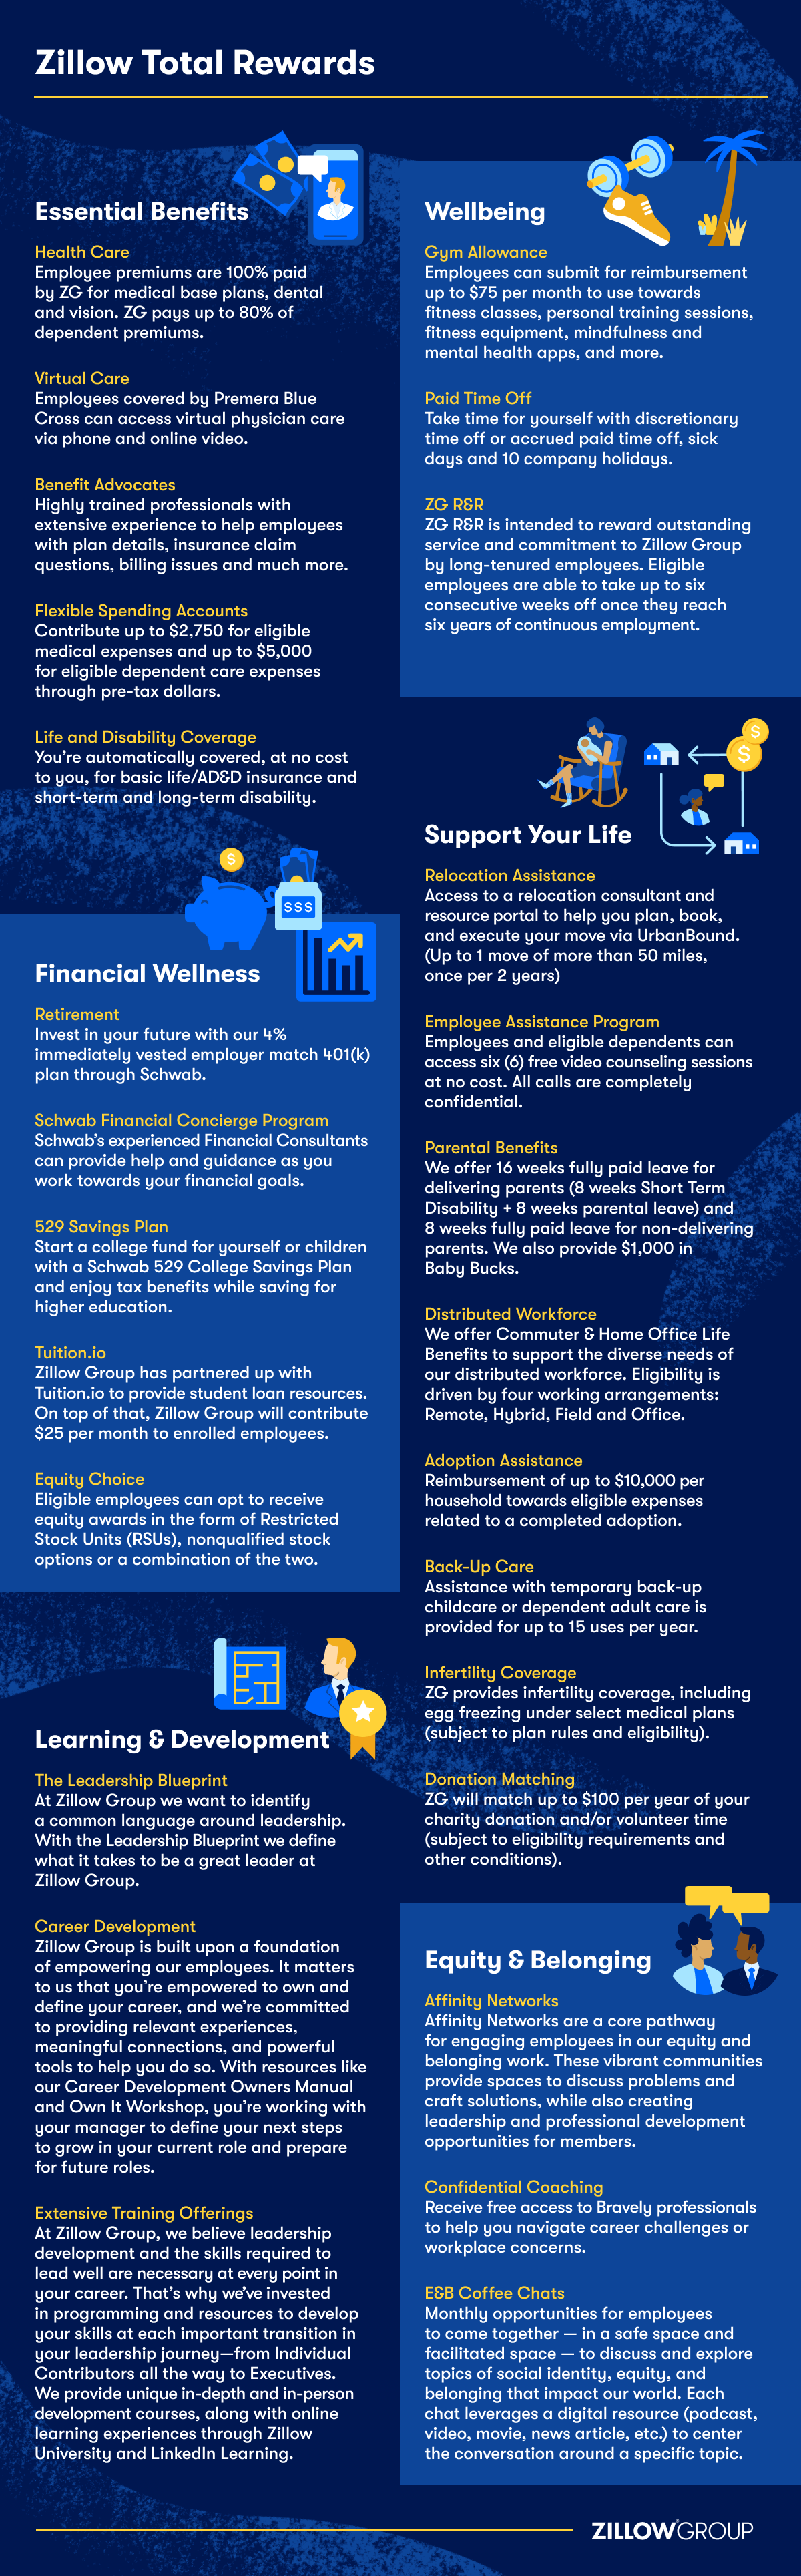 infographic that explains the details of employee benefits at Zillow